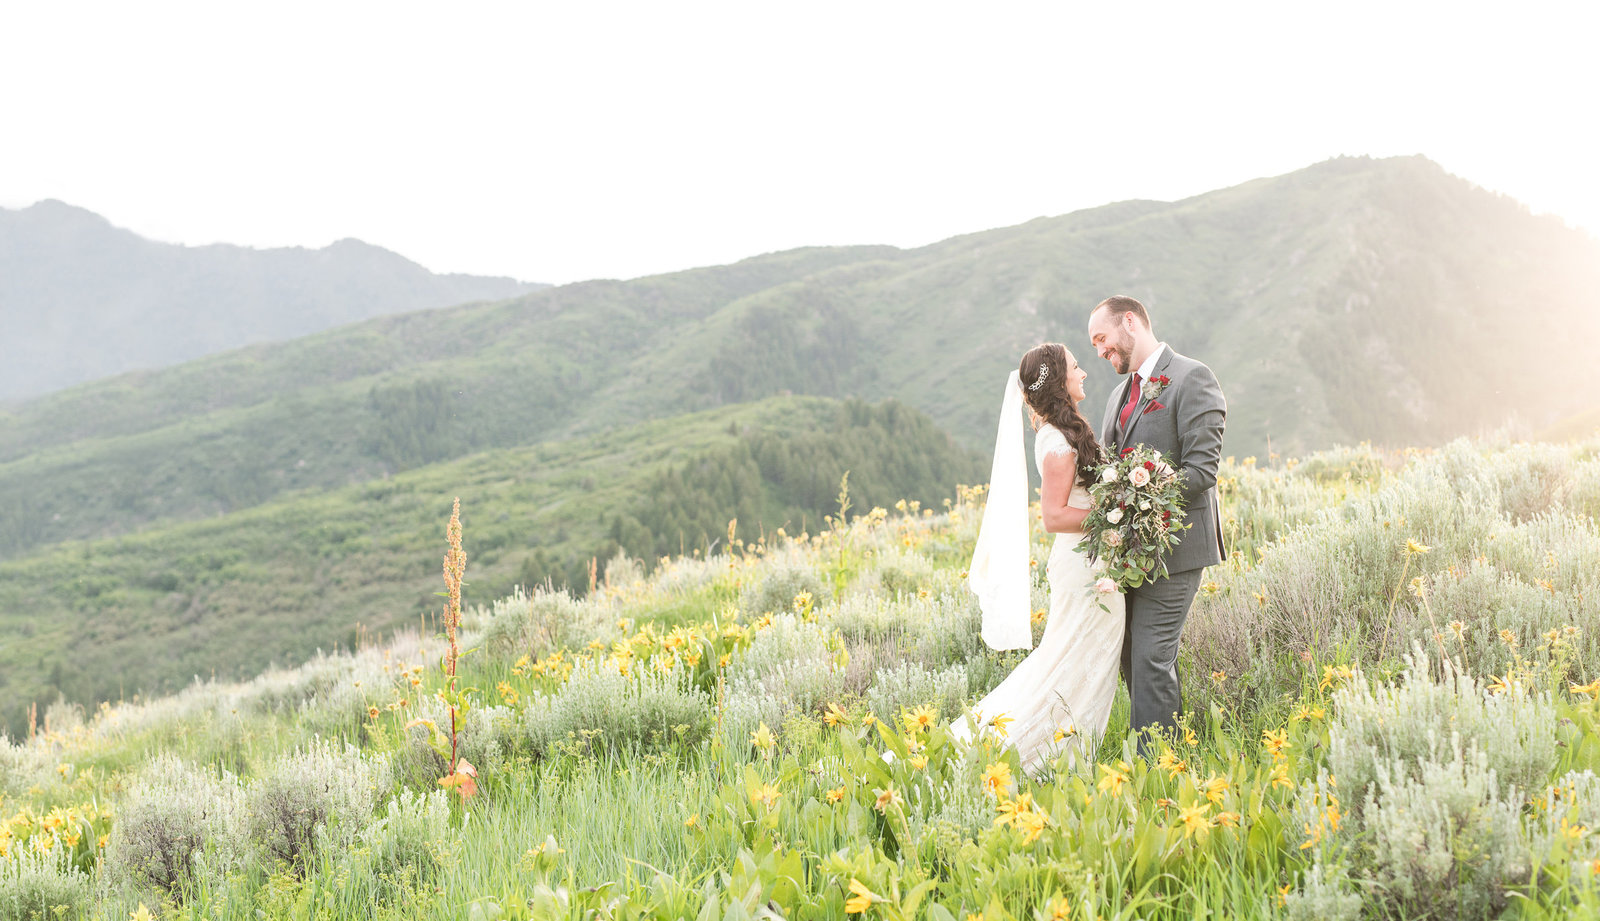 Utah Wedding Photographers - Jessie and Dallin Photography RE-076 Cover